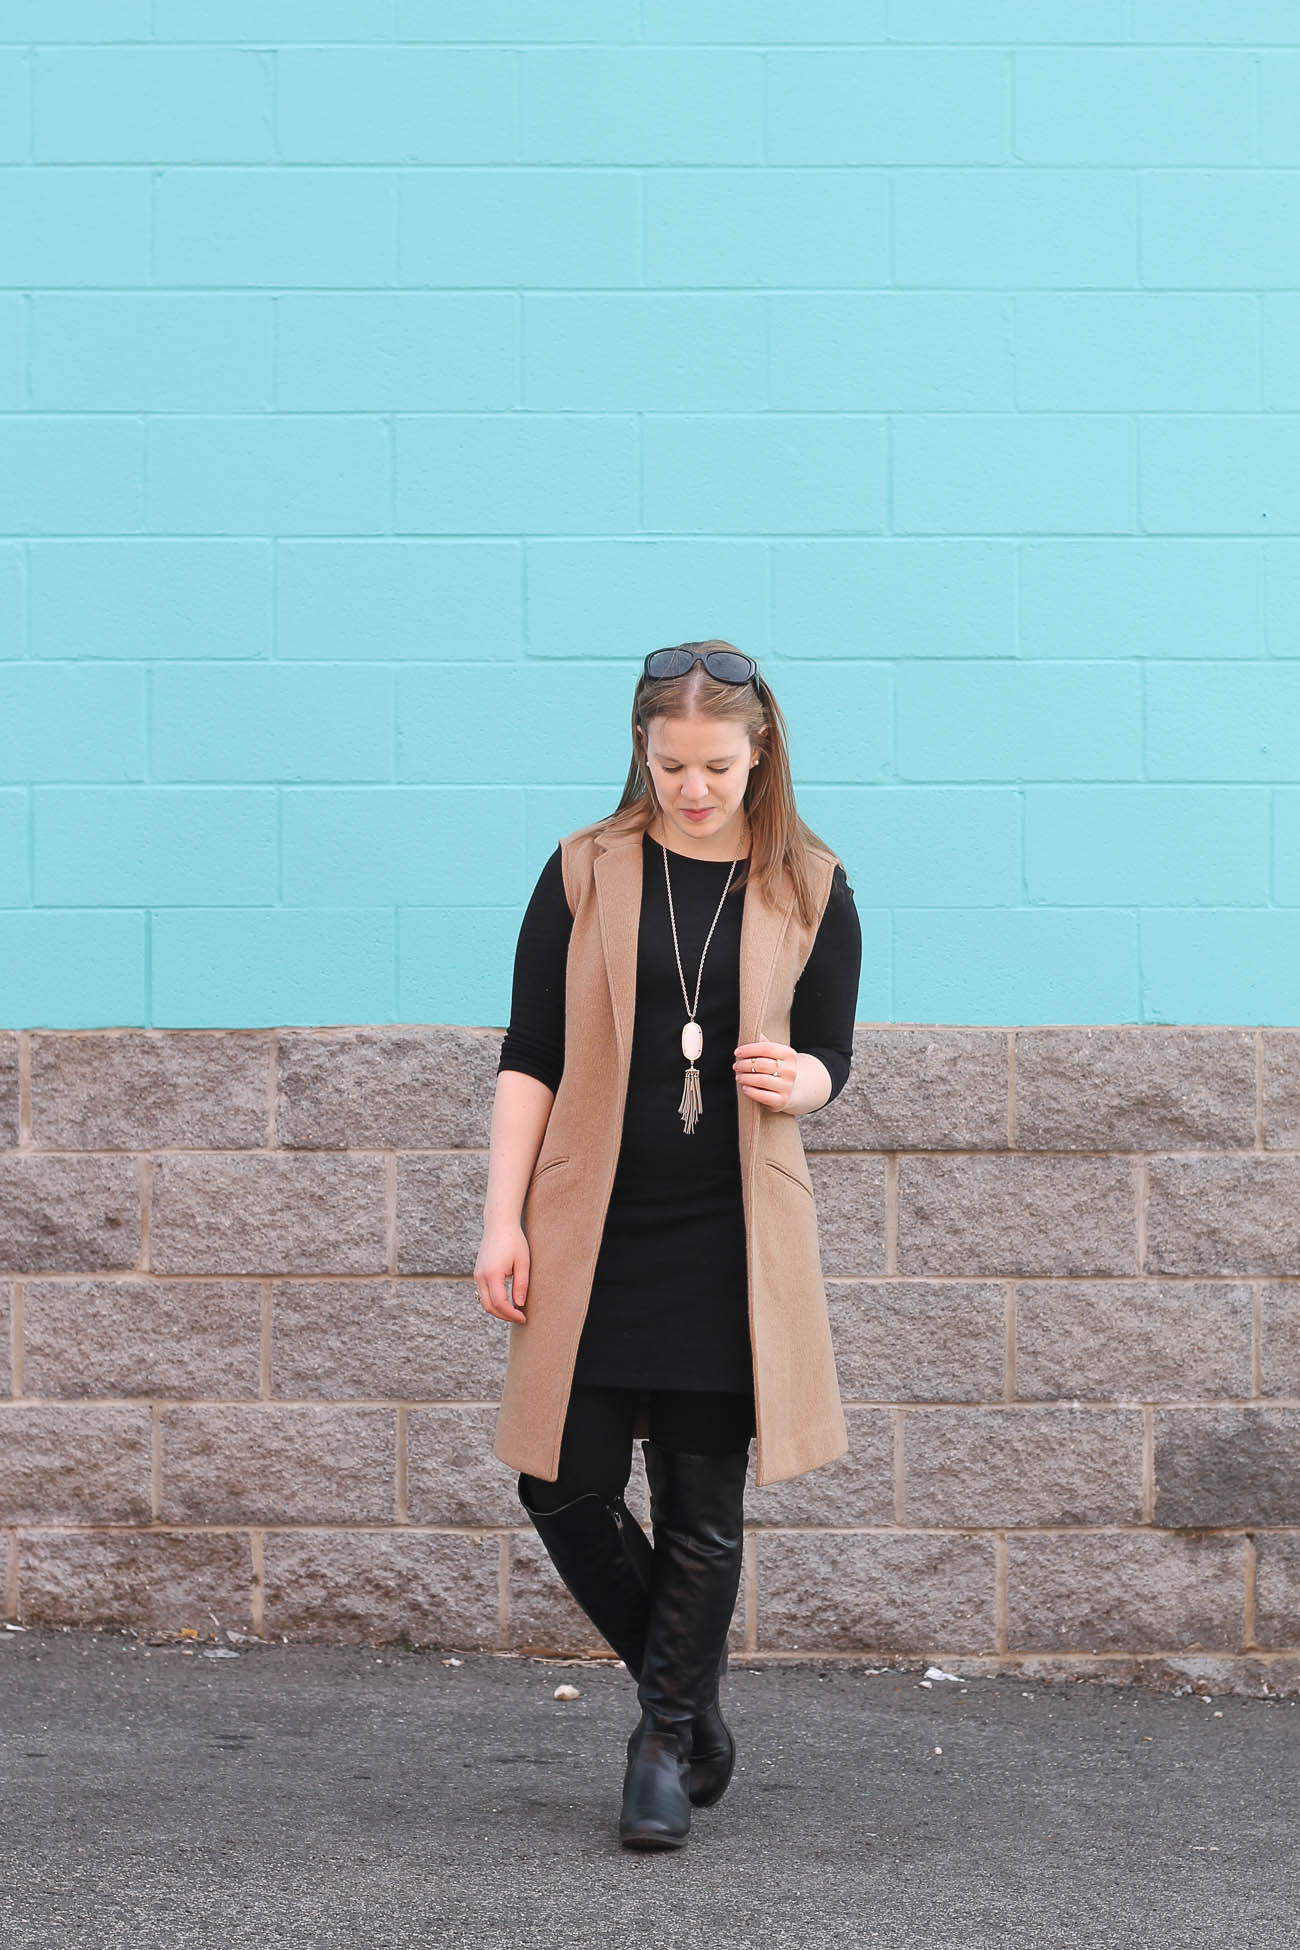 The Little Black Work Dress | Something Good, women, fashion, clothing, style, clothes, little black dress, camel sleeveless trench, gap vest, old navy dress, over the knee boots, black leather boots, kendra scott necklace, work outfit, fall outfit